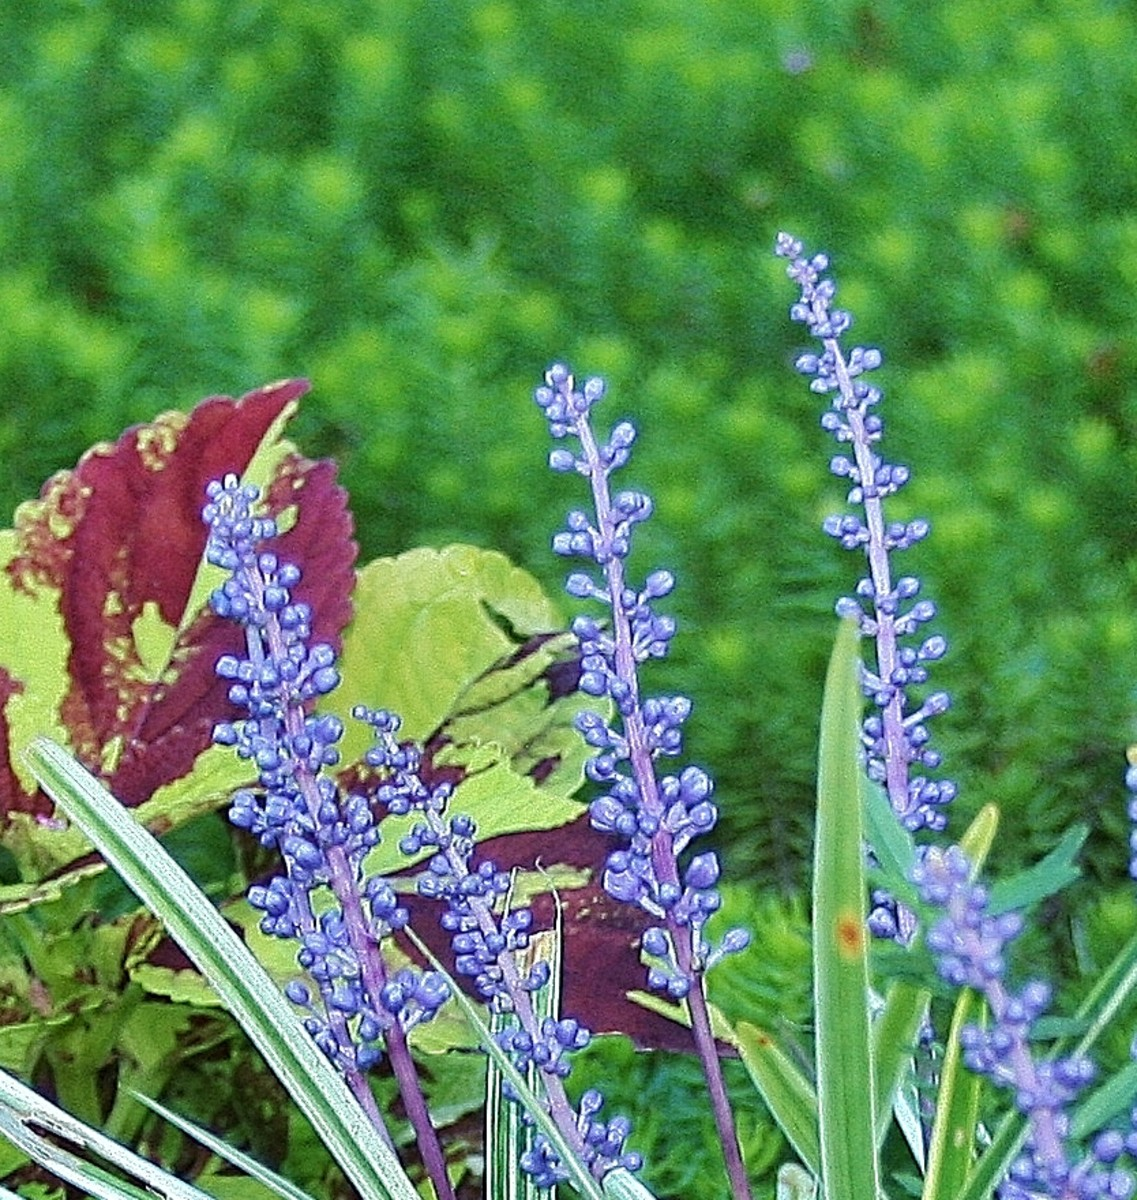 Like coleus, l. muscari grows best in hot, humid conditions.